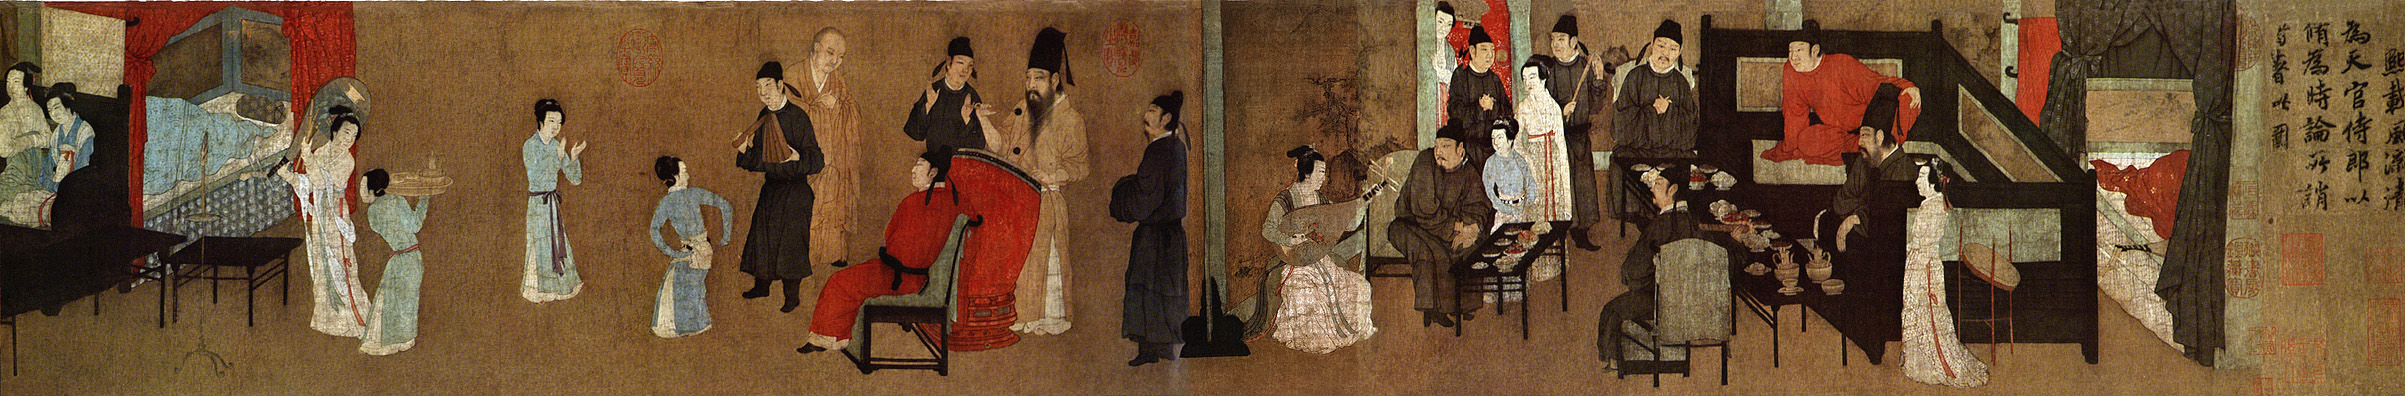 Gu Hongzhong's Night Revels 1.jpg